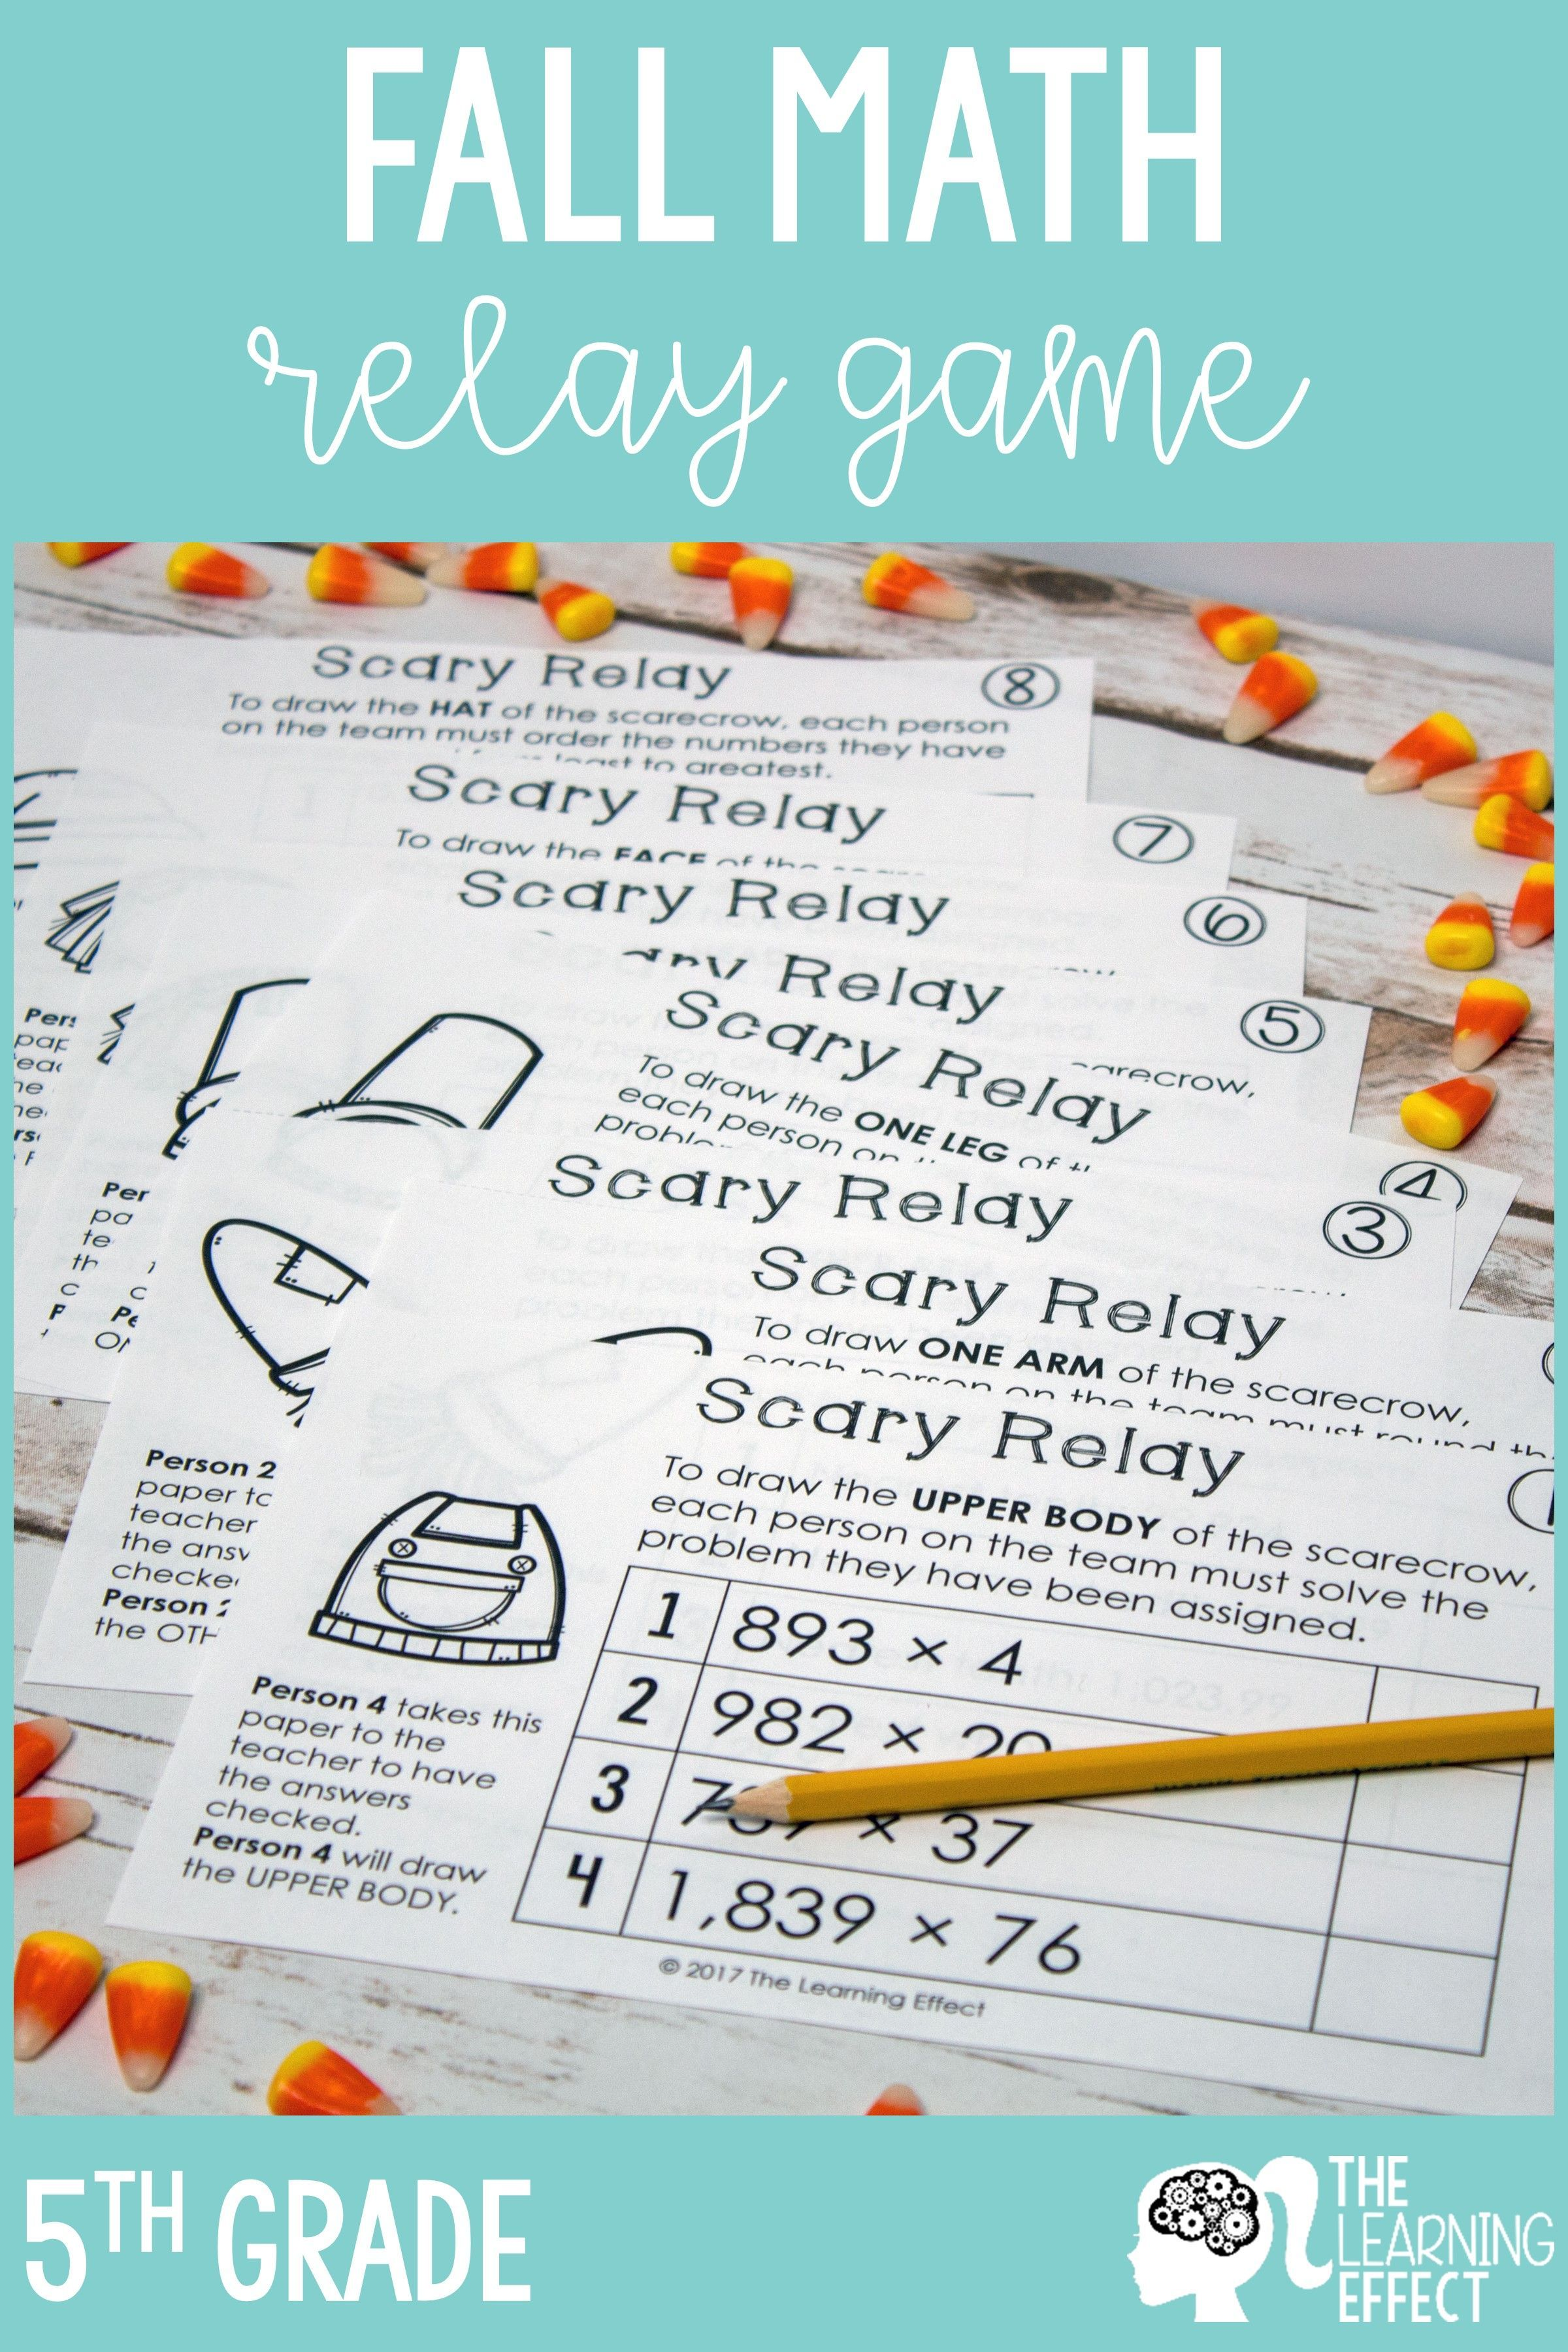 Fall Math Game For 5th Grade